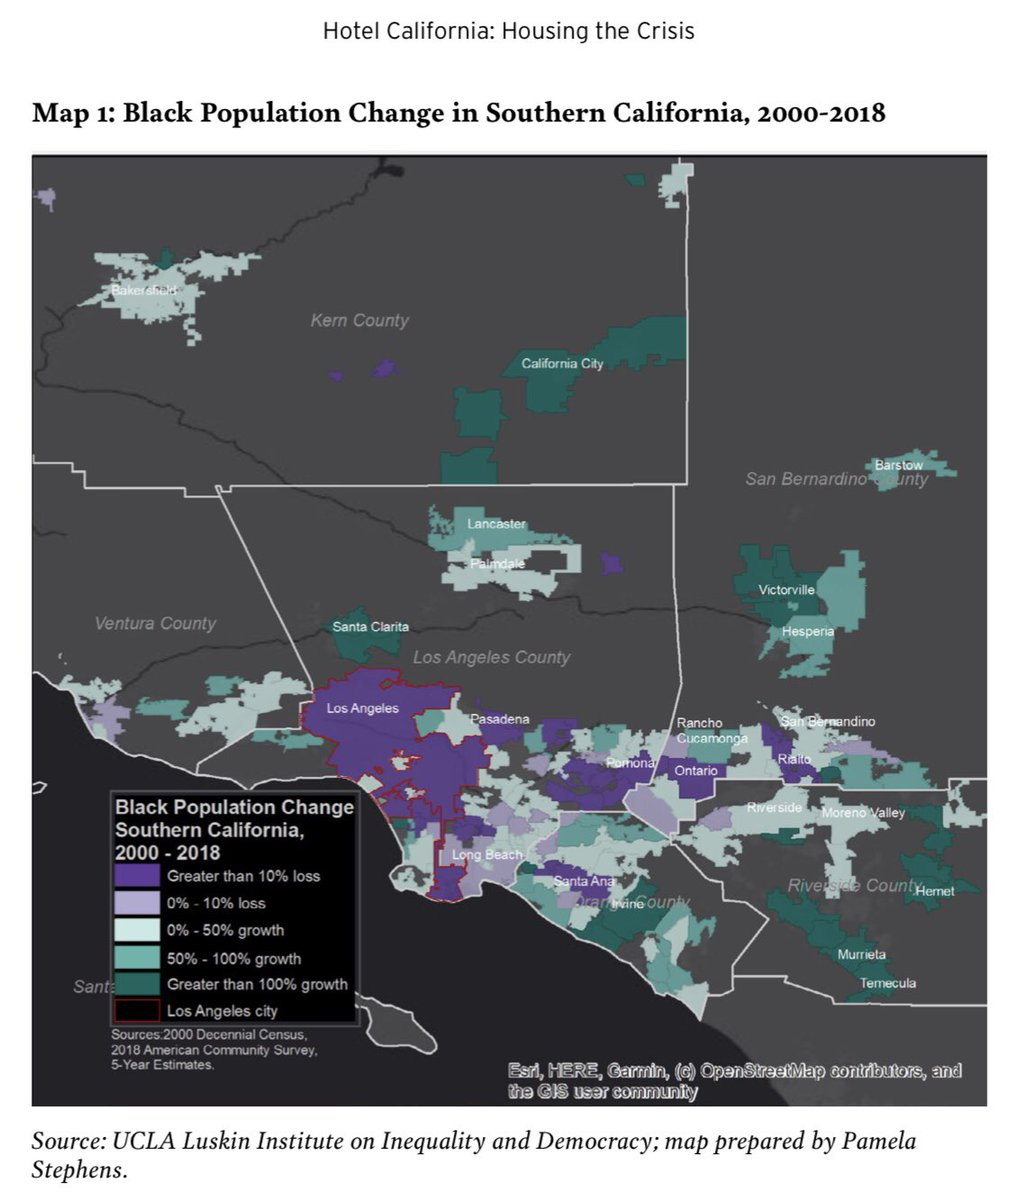 """This map (p. 12), by Pamela Stephens, of the banishment of Black communities, illuminates the stakes of our @ChallengeIneq report, """"Hotel California: Housing the Crisis."""" COvID-19 is yet another conjuncture in the forced removals of people of color: bit.ly/2CiLP5Z"""